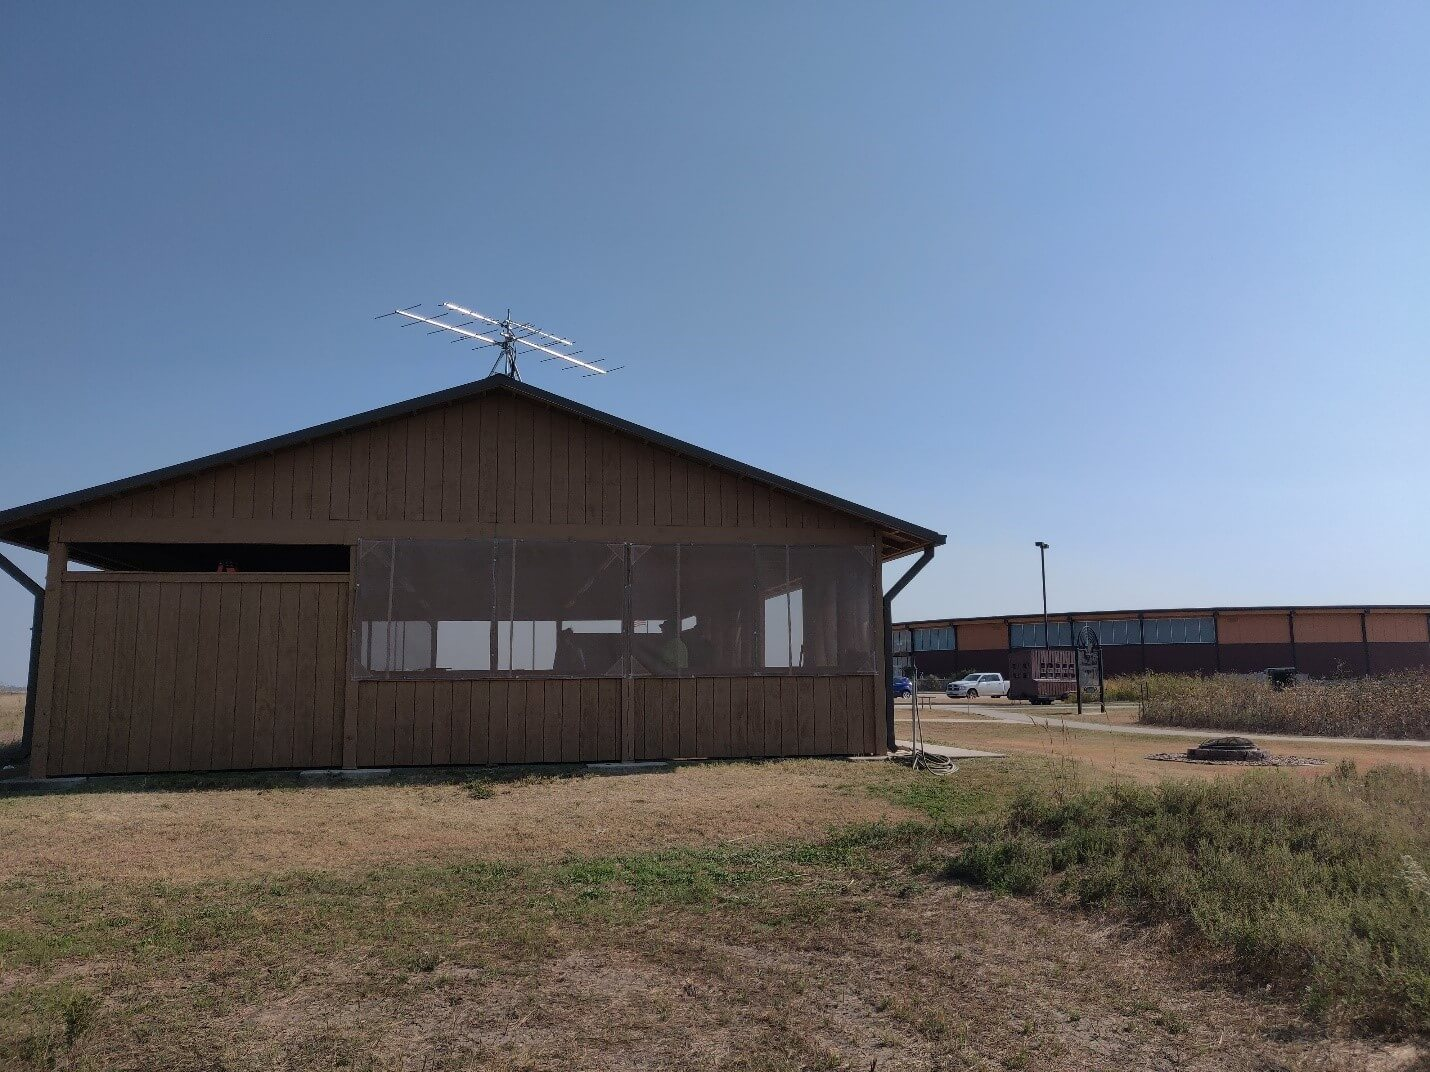 Photo of a Motus station on top of a Picnic shelter at the Kansas Wetlands Education Center at Cheyenne Bottoms Wildlife Area, in central Kansas.